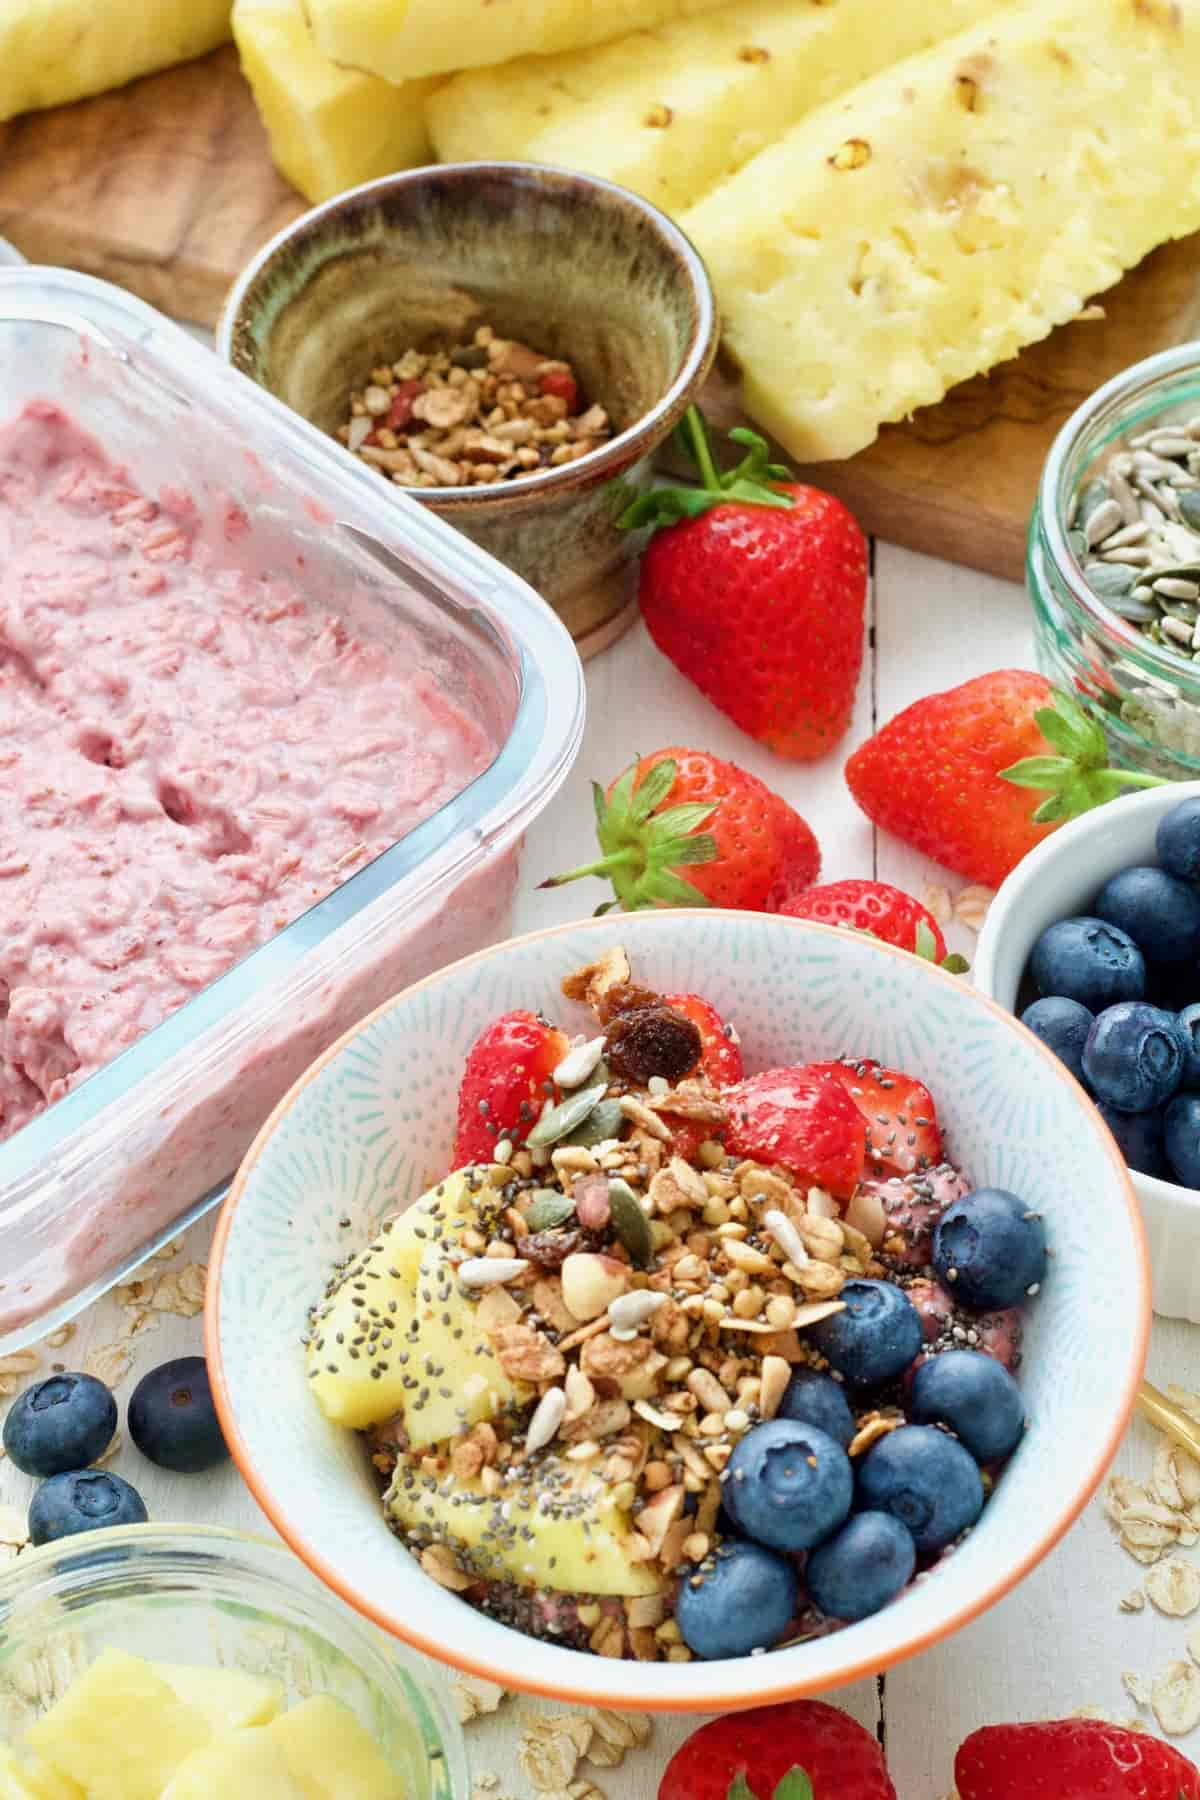 Strawberry overnight oats in a bowl with toppings.